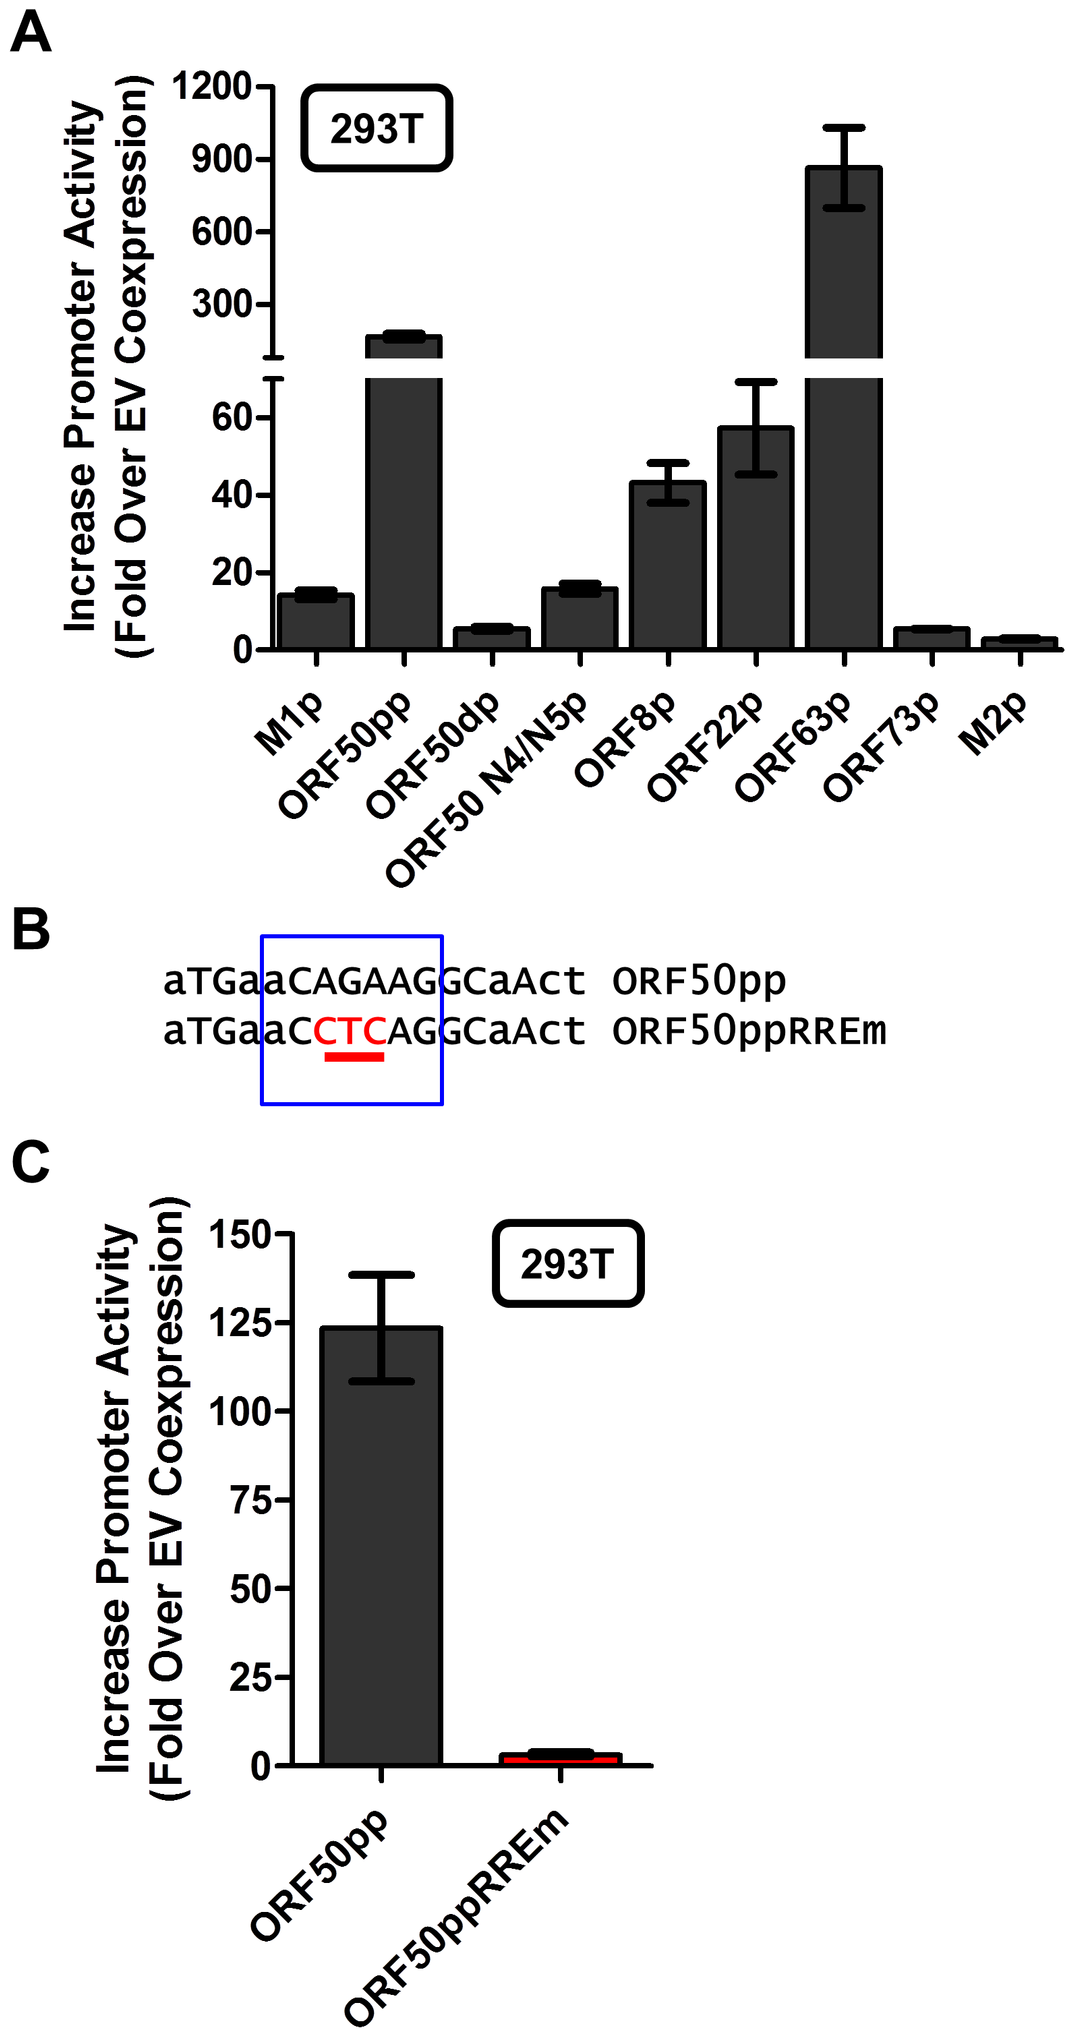 Novel RRE involved in Rta activation of the gene 50 proximal promoter.